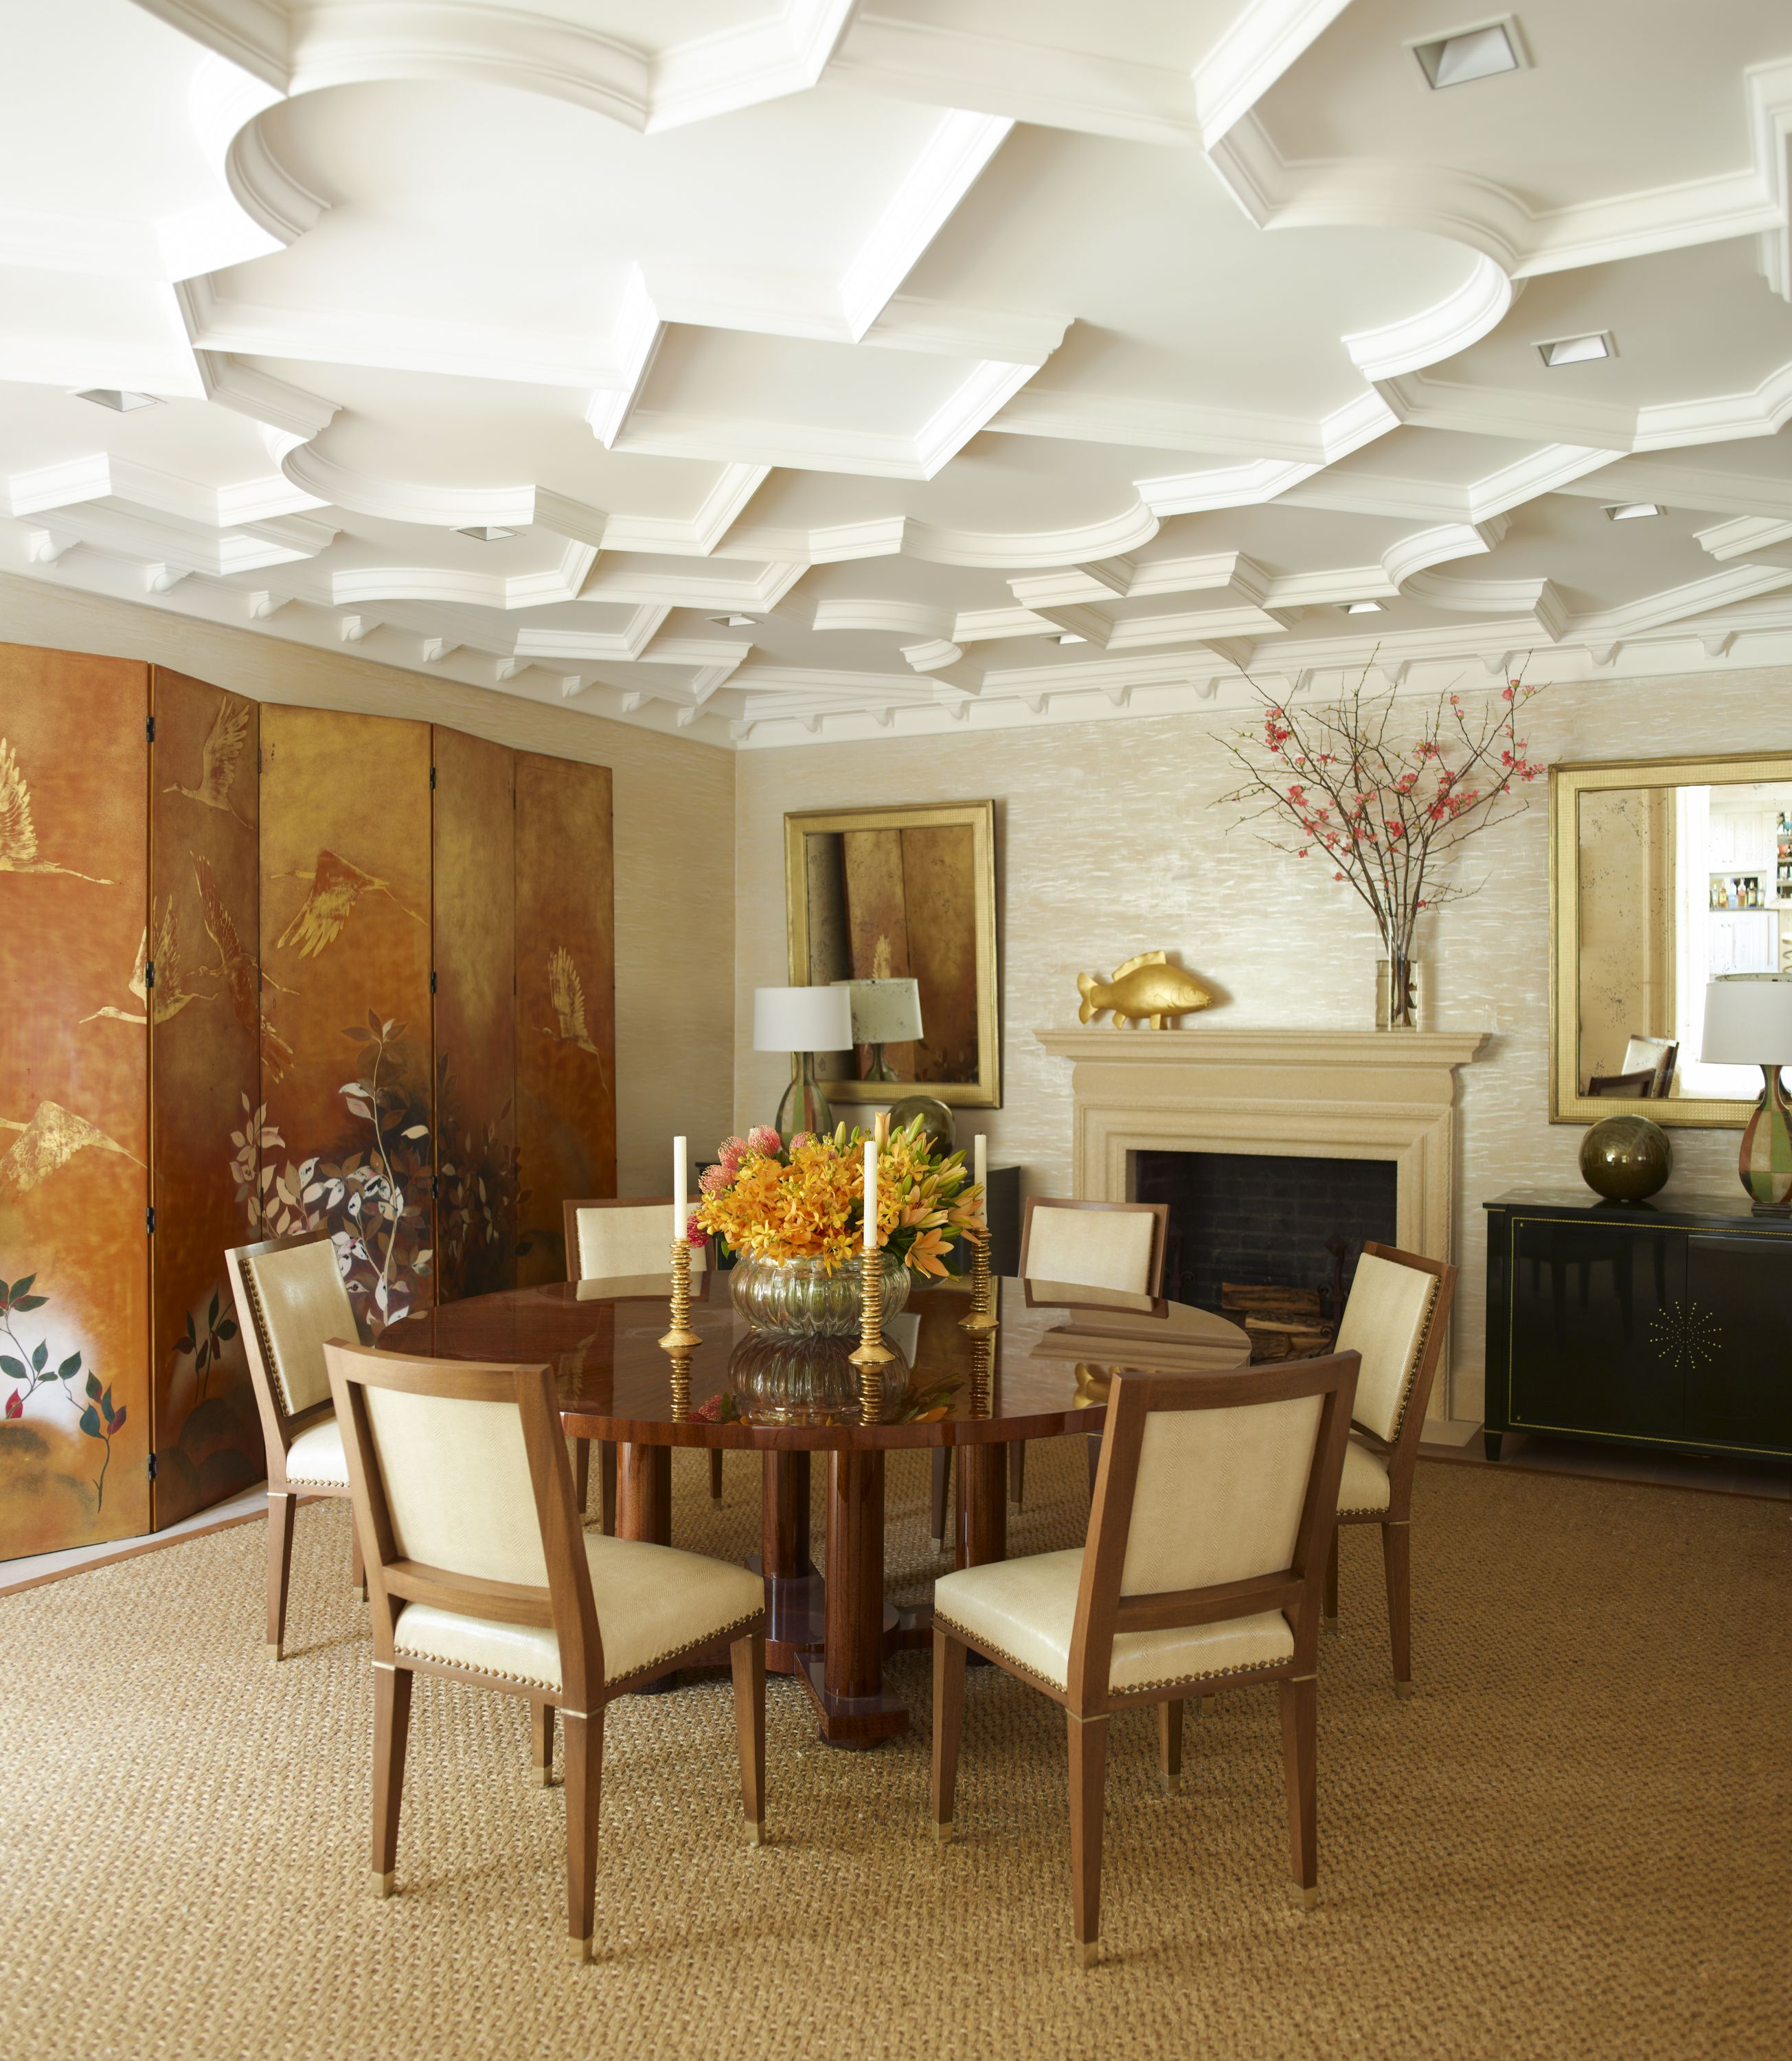 A Large Scale Decorative Plaster Pattern Brings Texture To The Dining Room Ceiling Which